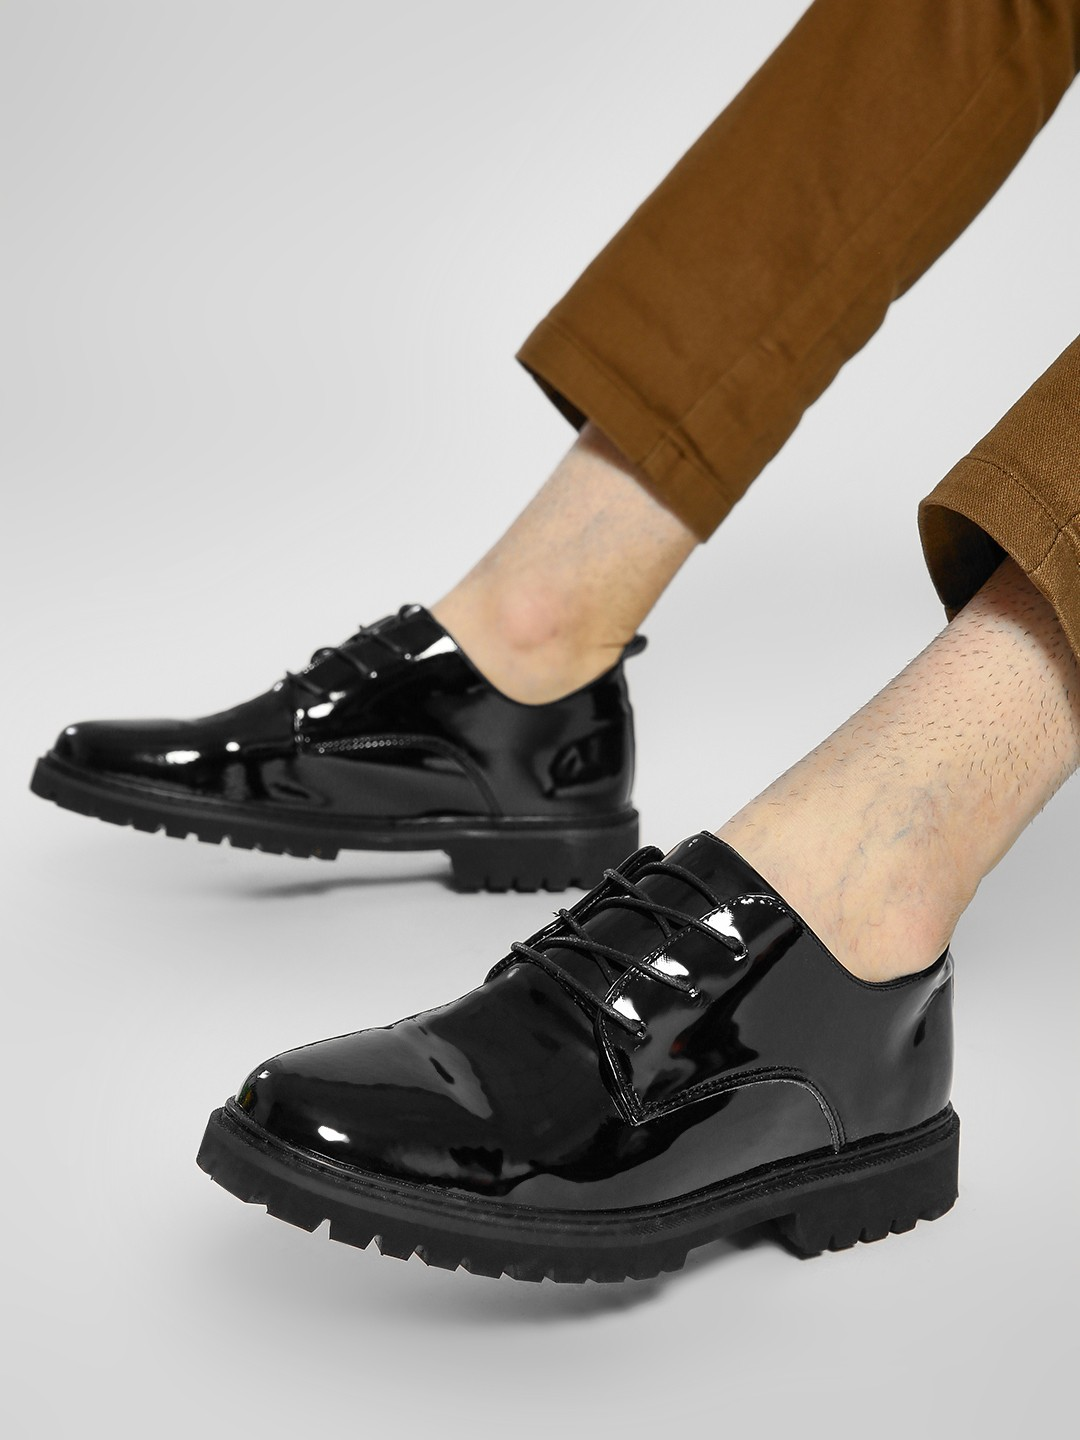 KOOVS Black Cleated Sole Patent Derby Shoes 1